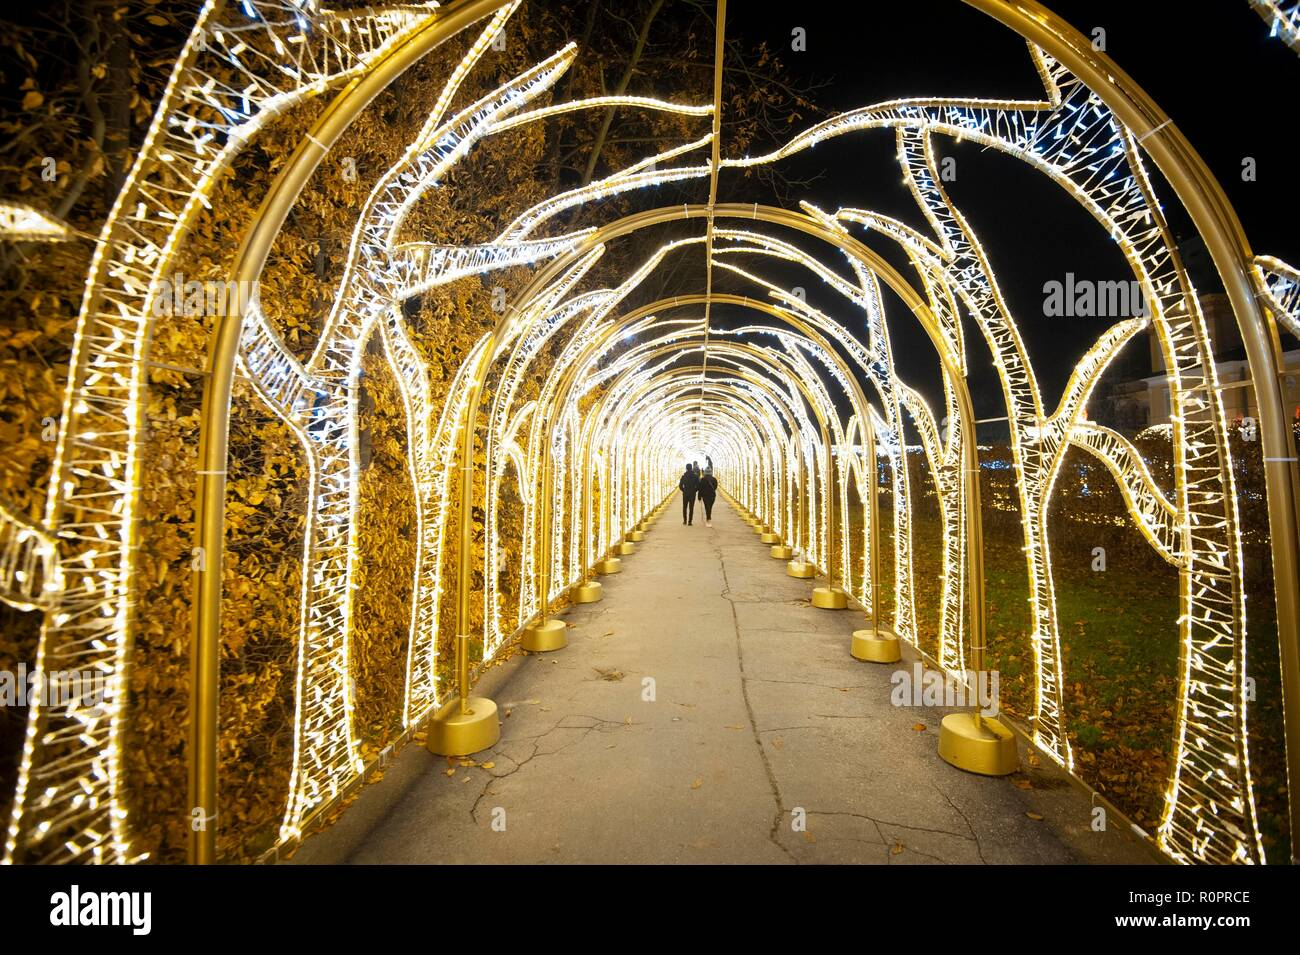 Warsaw, Poland. 6th Nov, 2018. People visit the Royal Garden of Light exhibition at Wilanow Palace in Warsaw, Poland, on Nov. 6, 2018. Credit: Jaap Arriens/Xinhua/Alamy Live News - Stock Image